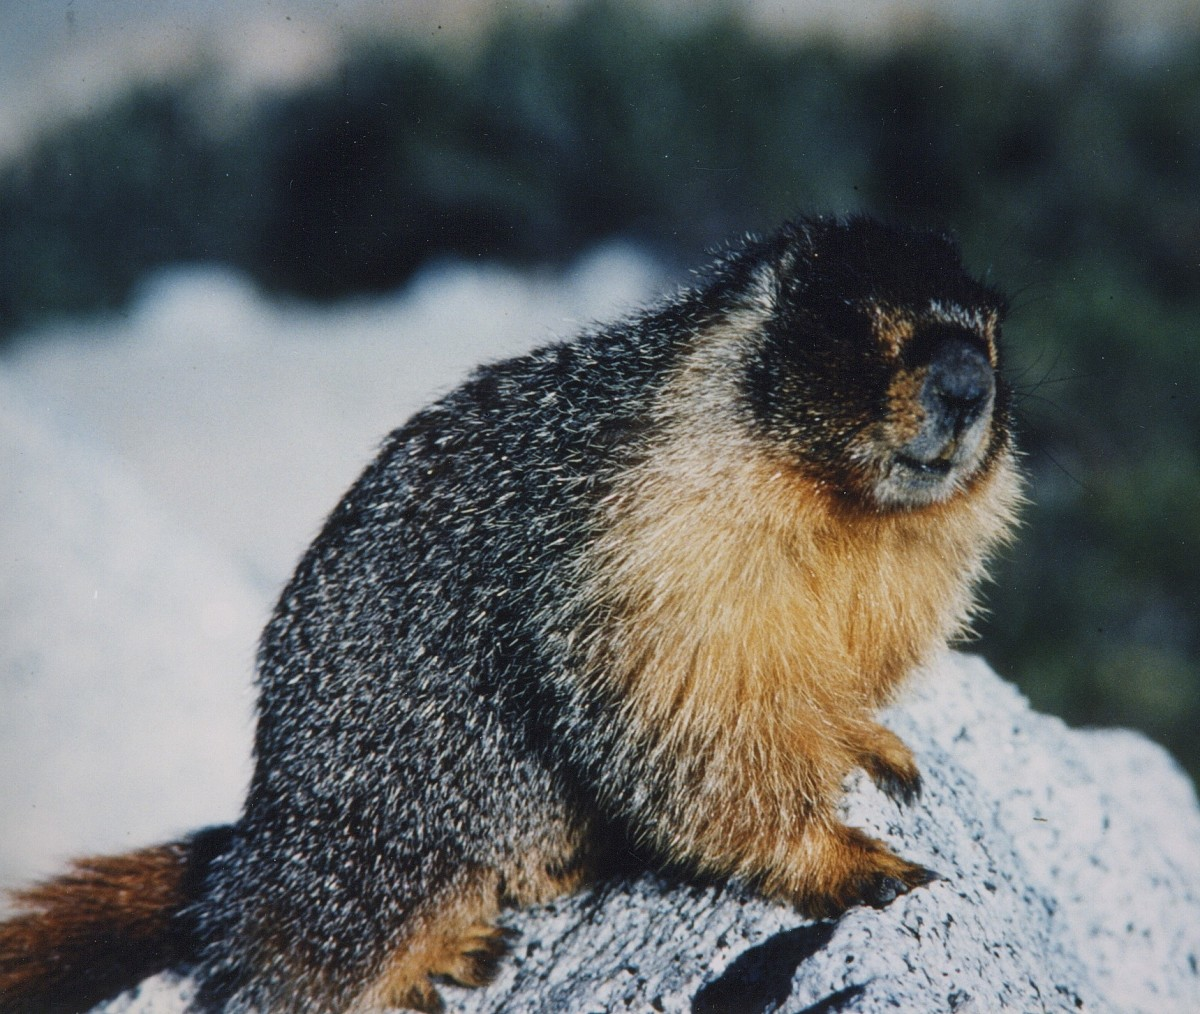 Mature yellow-bellied marmot (Marmota flaviventris)